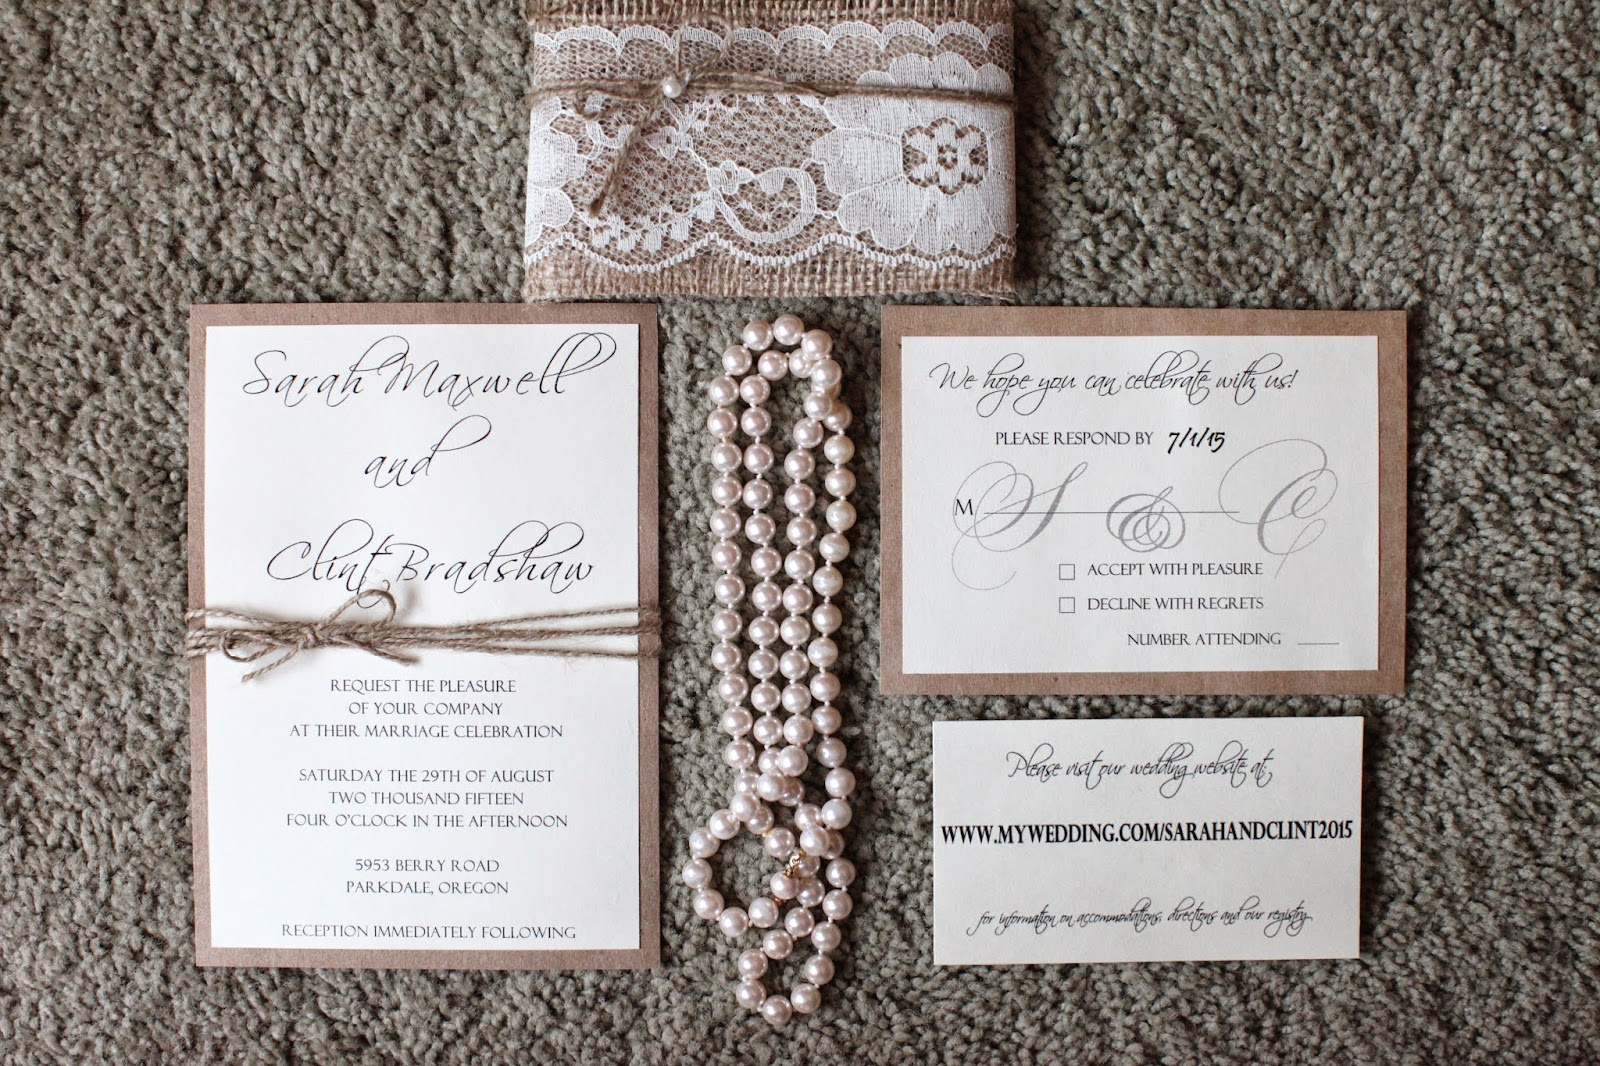 Rustic Diy Wedding Invitations: His, Hers And Ours DIY: RUSTIC CHIC WEDDING INVITATIONS